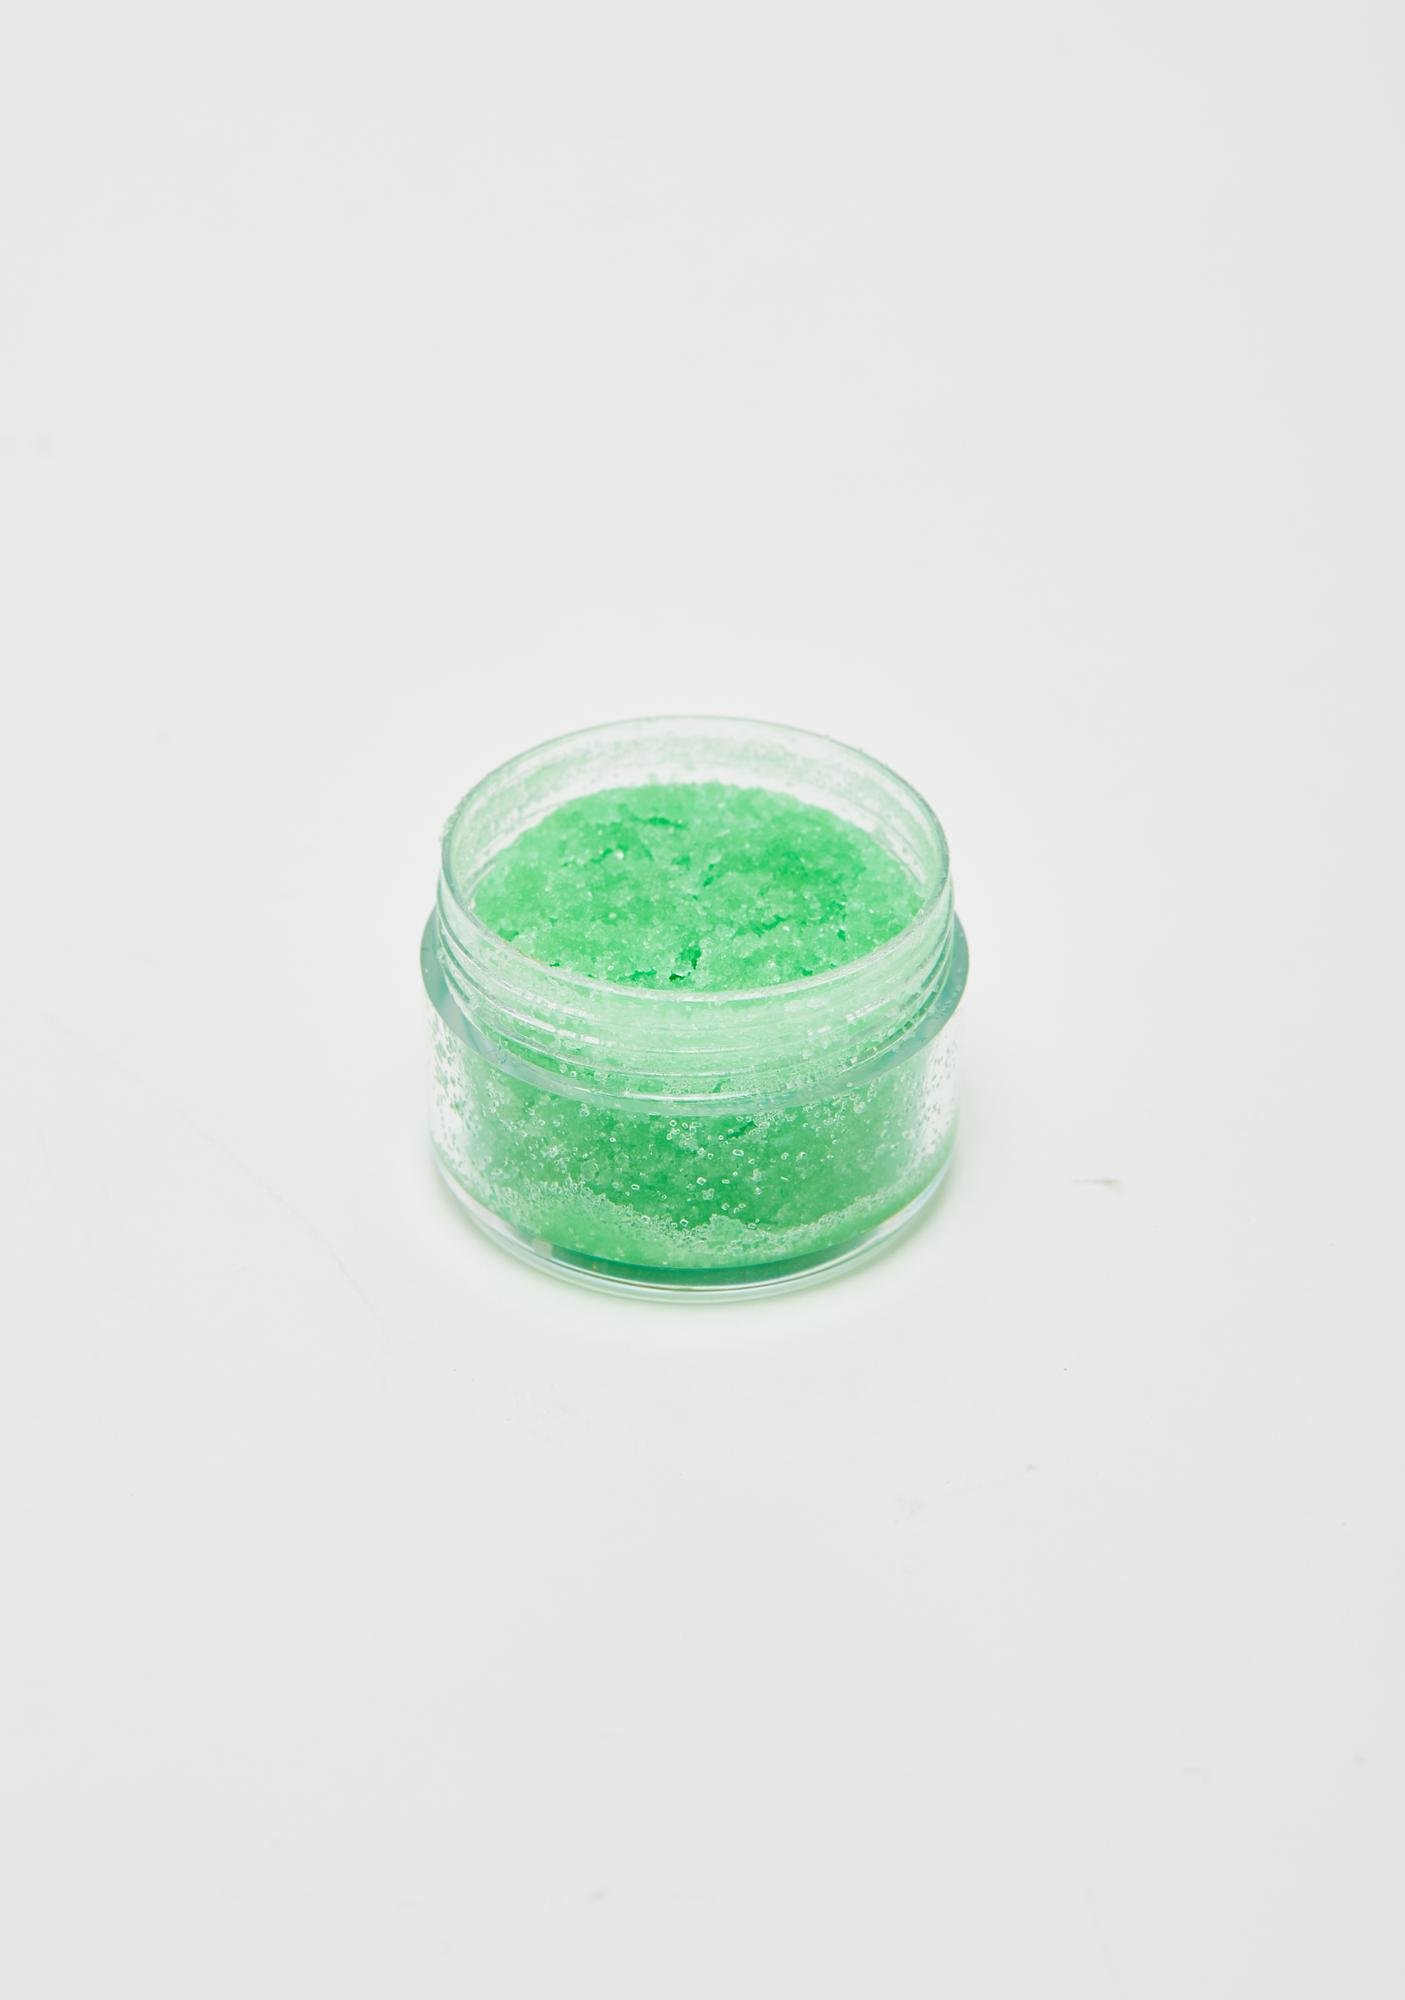 Boxwoods Cosmetics 8TH Lip Scrub